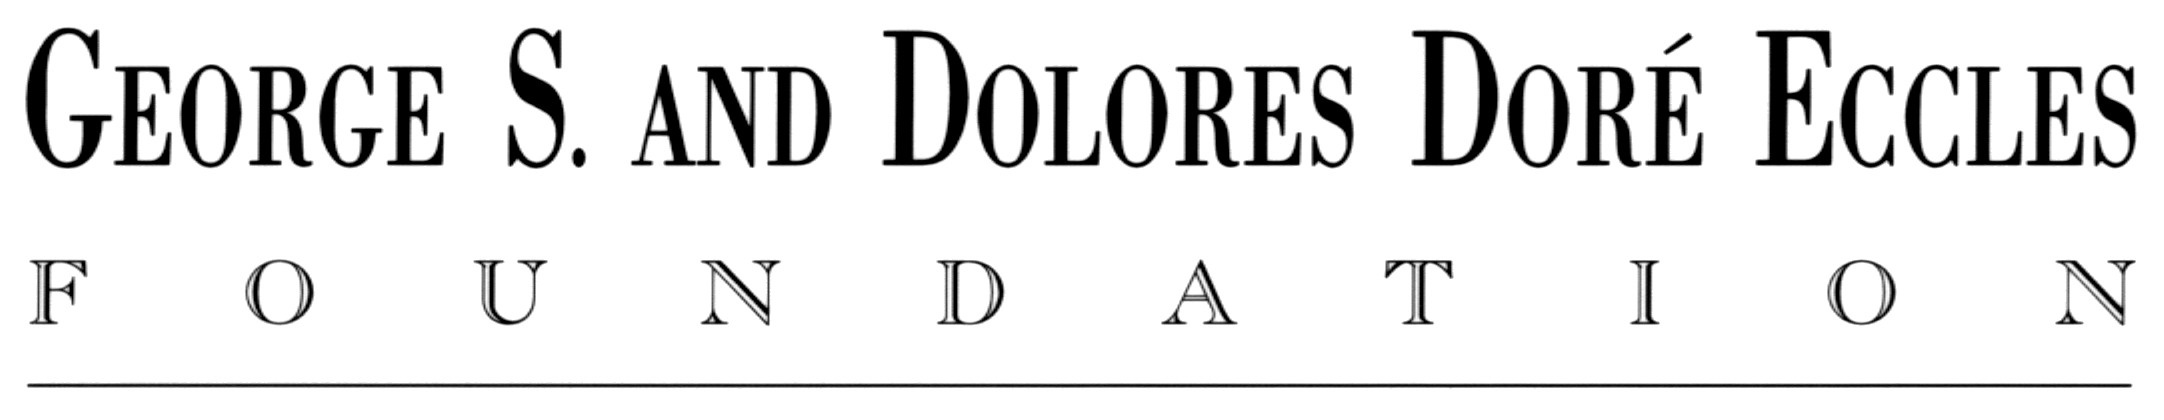 The 2019 Season Is Generously Sponsored by the George S. and Dolores Doré Eccles Foundation